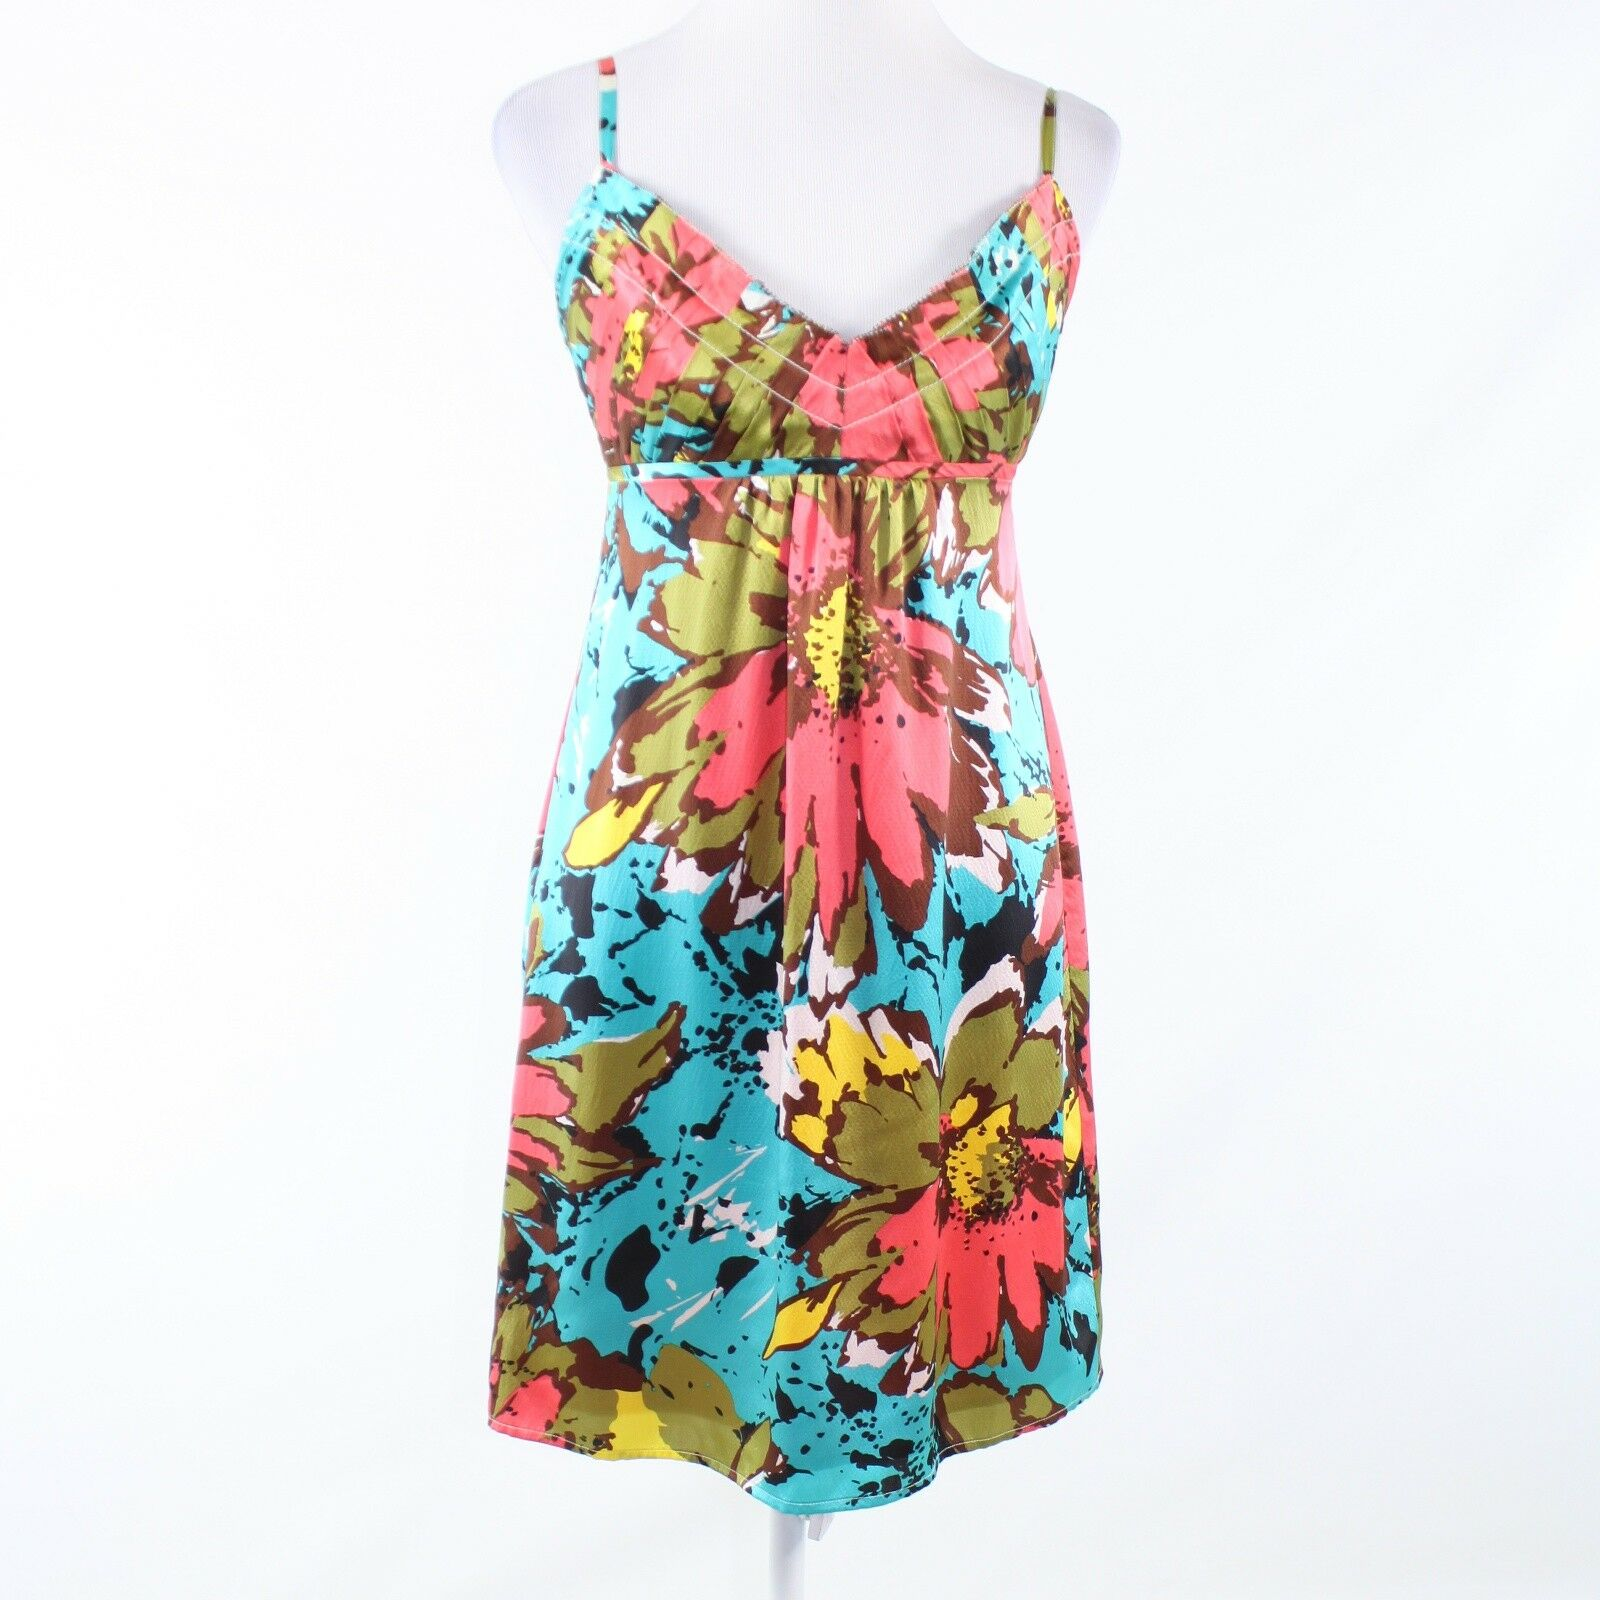 Turquoise blue pink floral print 100% silk ANTHROPOLOGIE BETH BOWLEY sun dress S-Newish